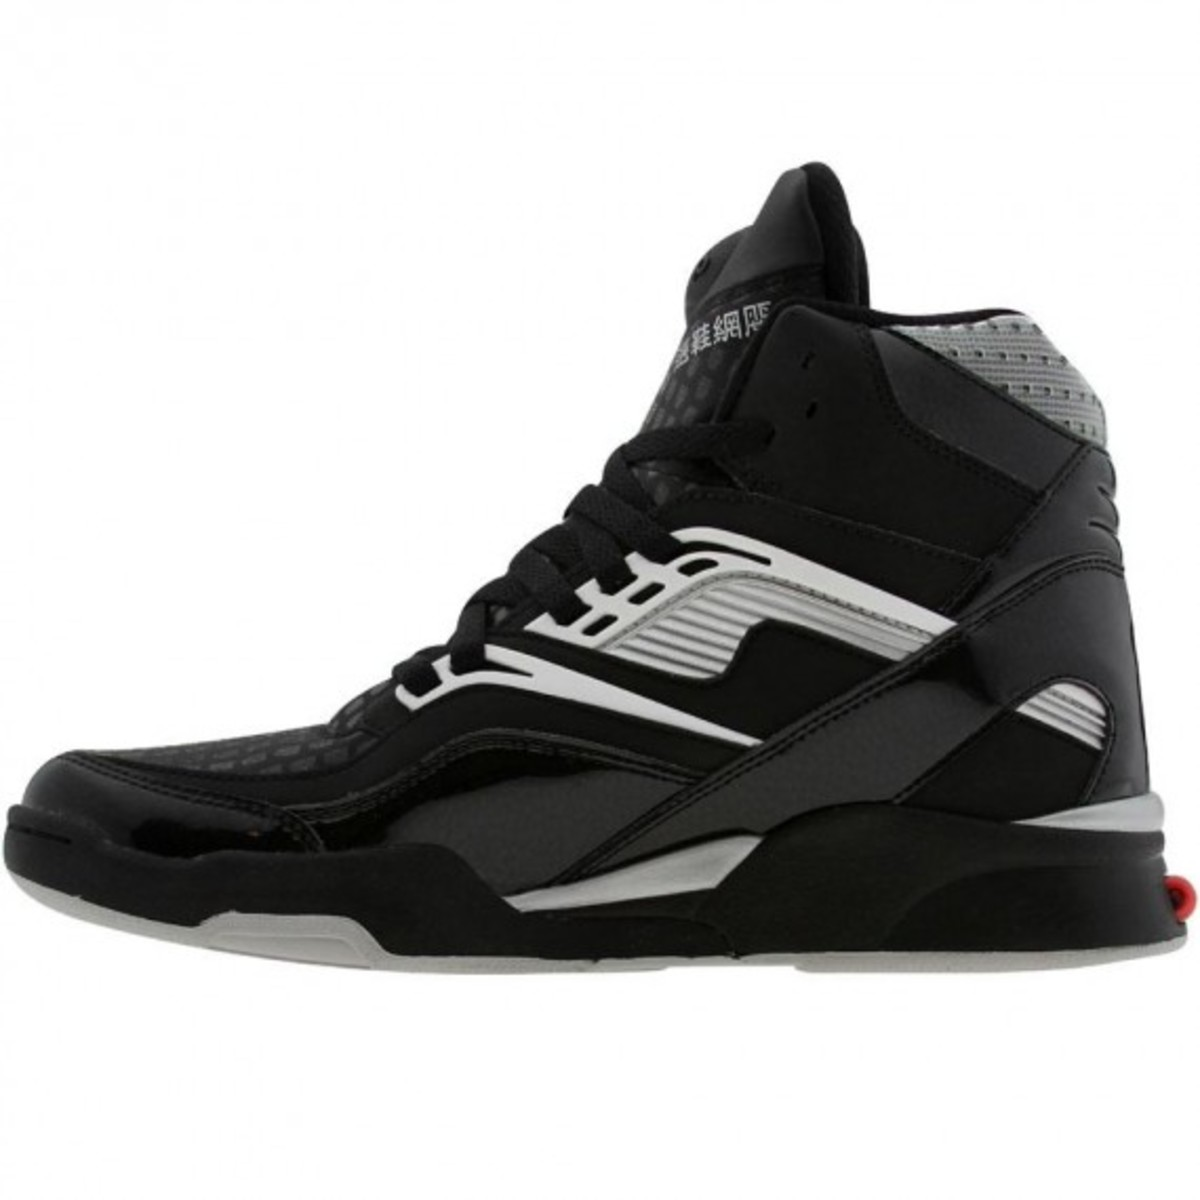 pick-your-shoes-reebok-twilight-zone-pump-bberry-05